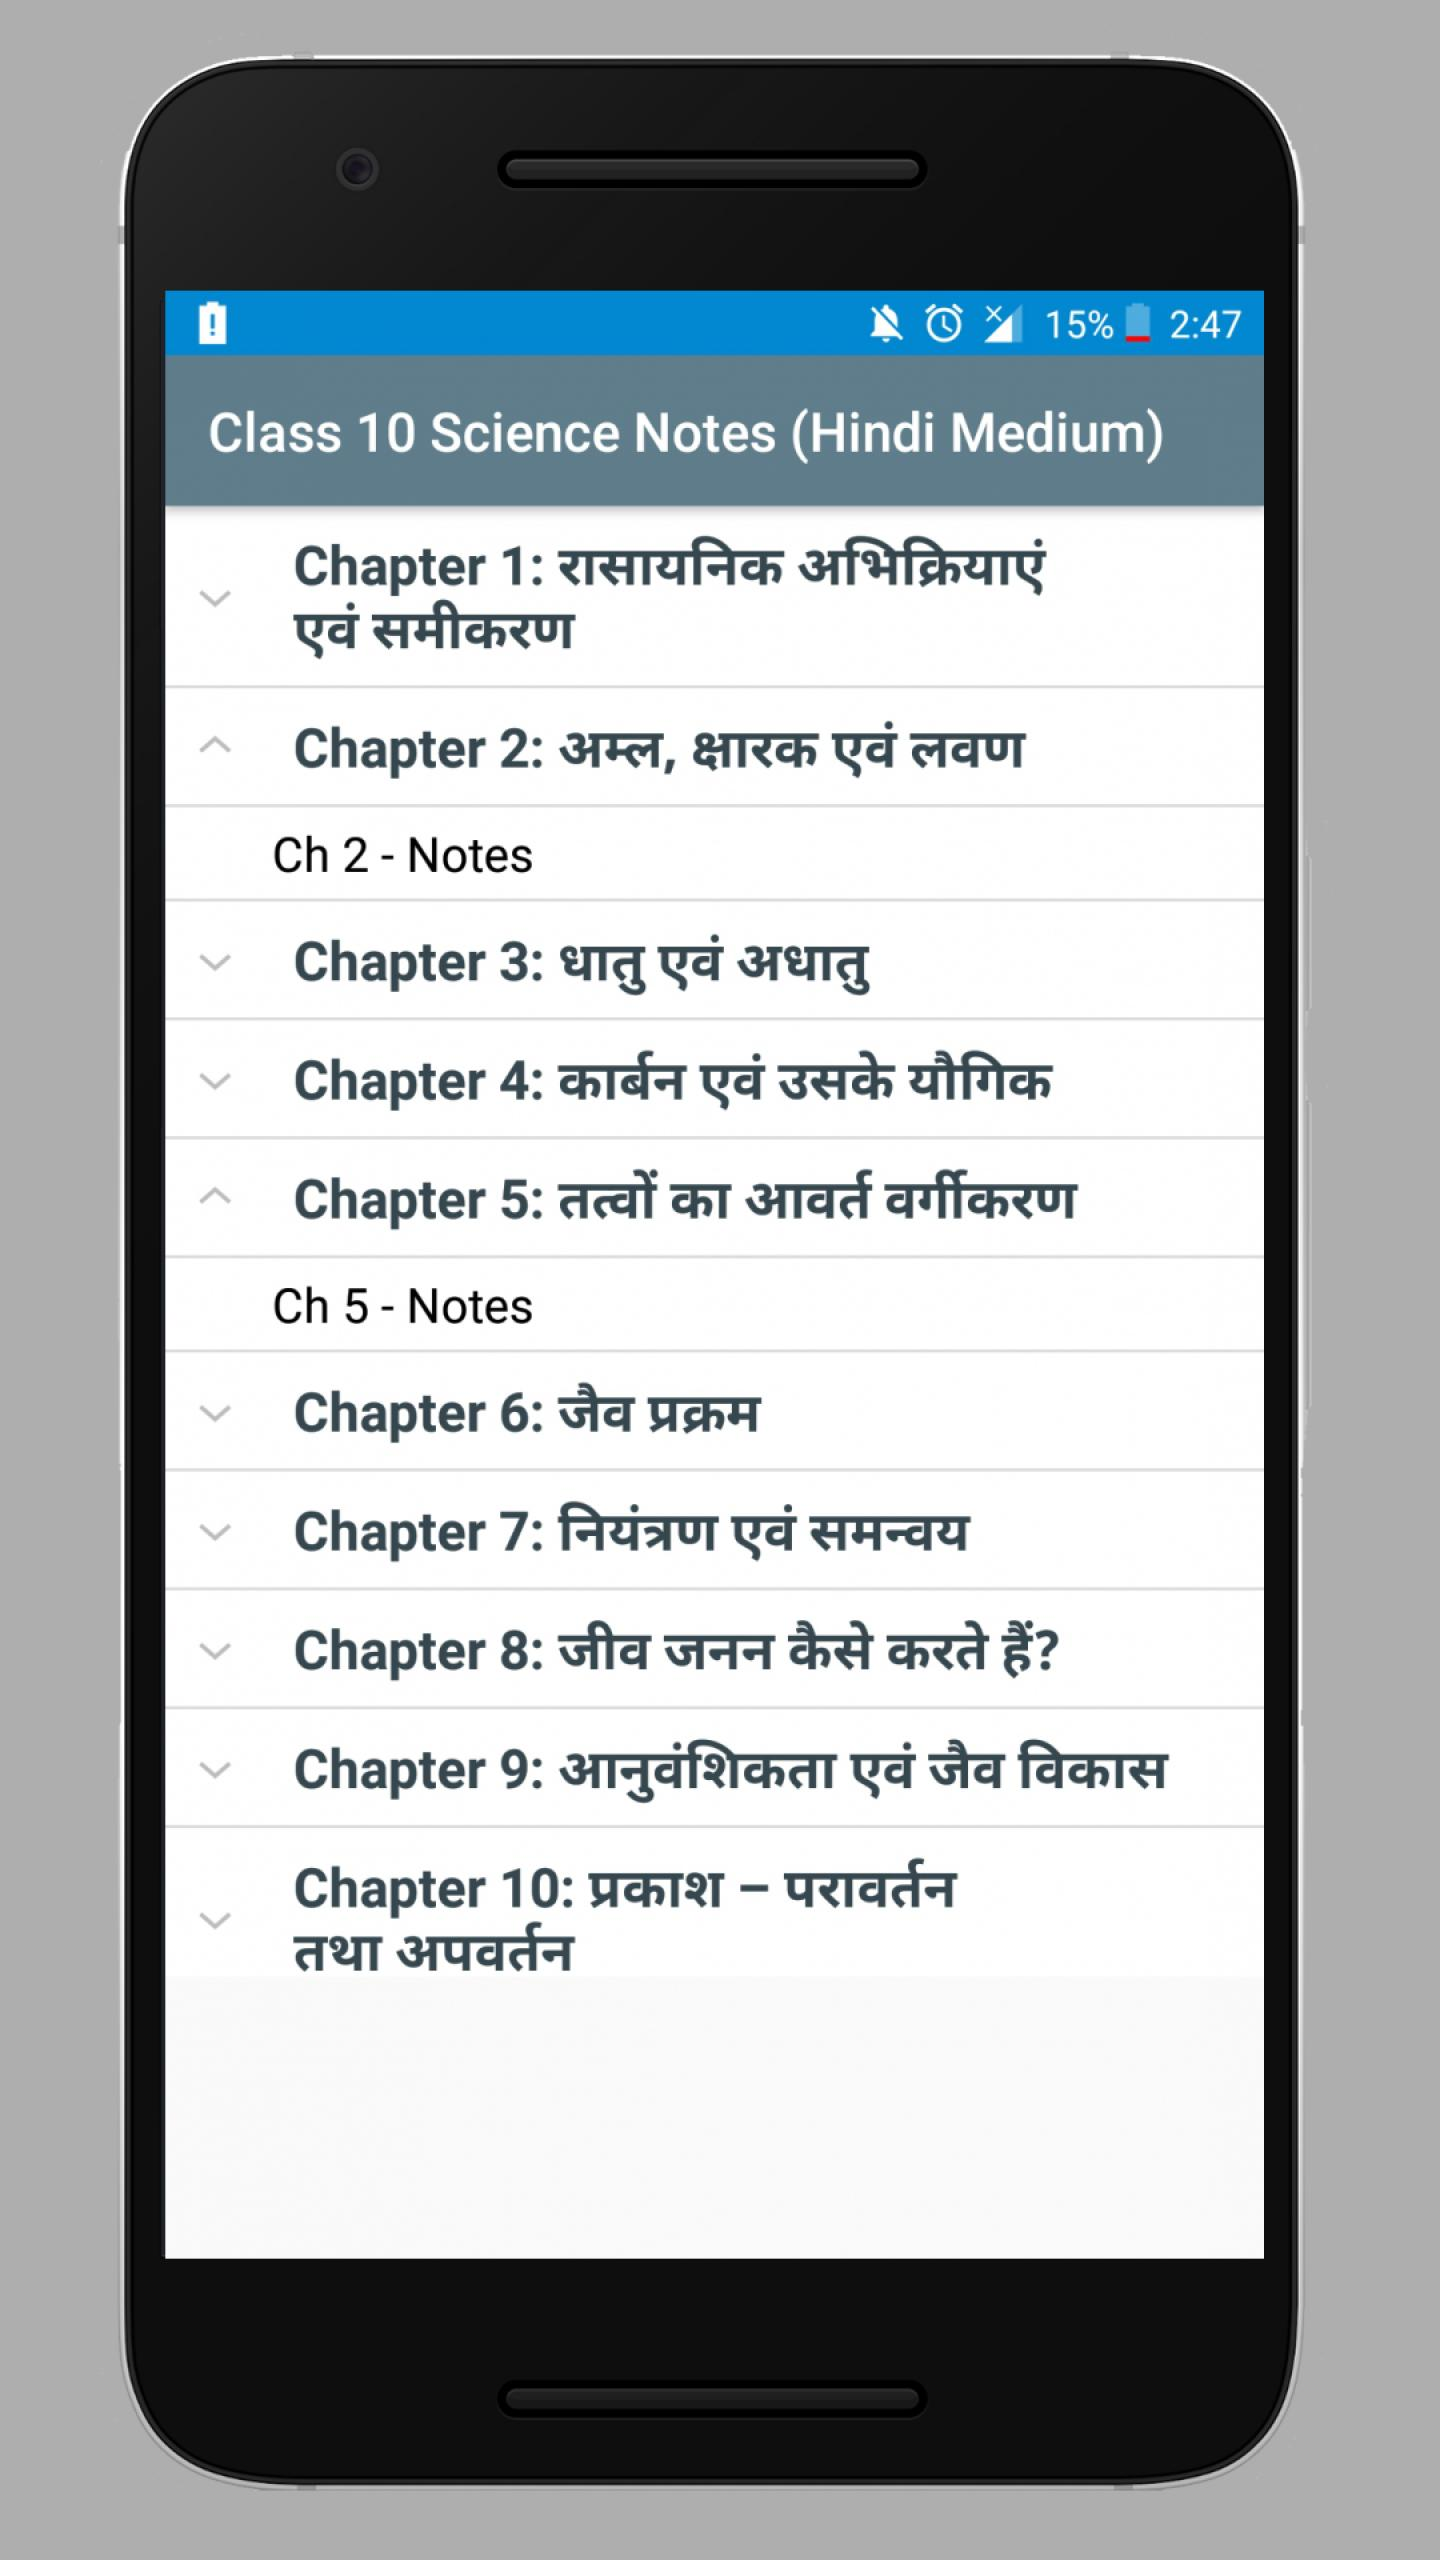 Class 10 Science Notes (Hindi Medium) for Android - APK Download